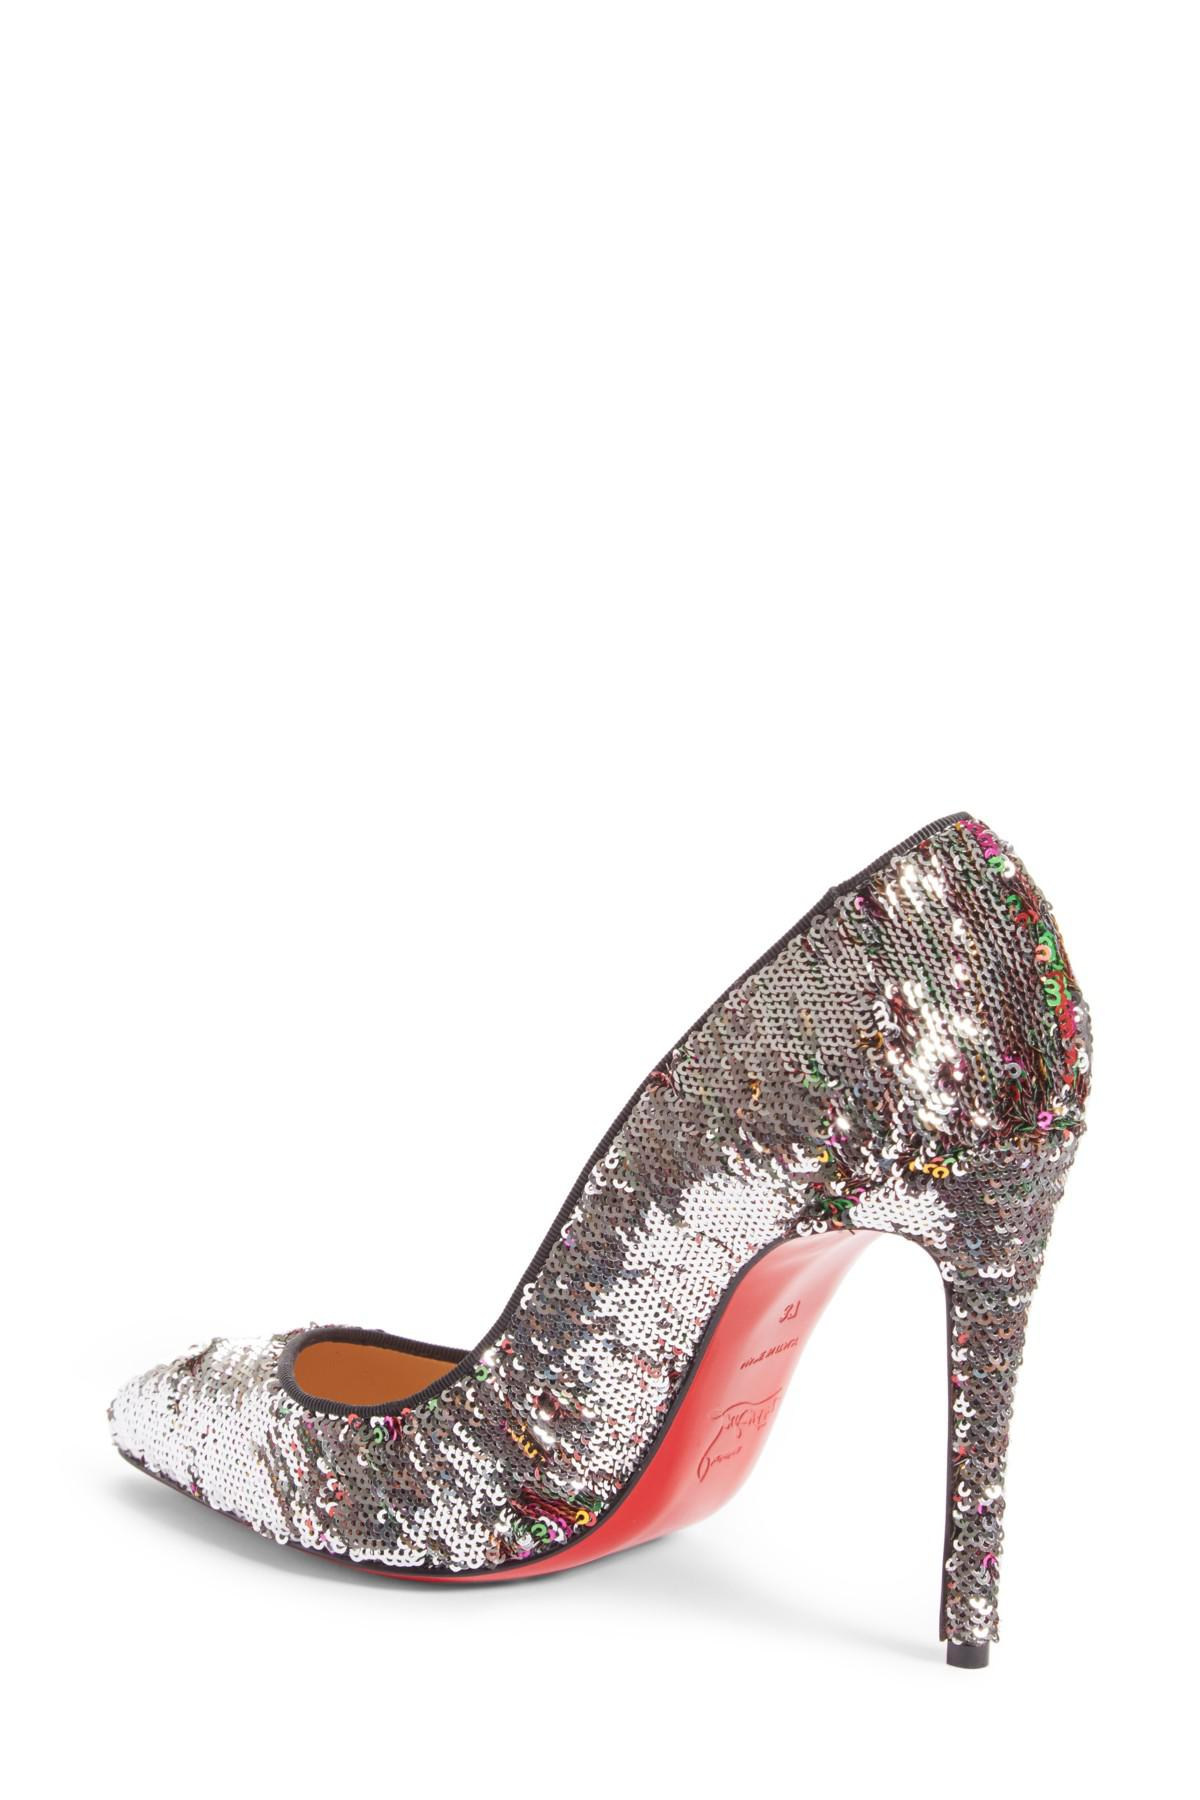 9026035073b Gallery. Previously sold at  Nordstrom Rack · Women s Pointed Toe Pumps  Women s Christian Louboutin Pigalle ...